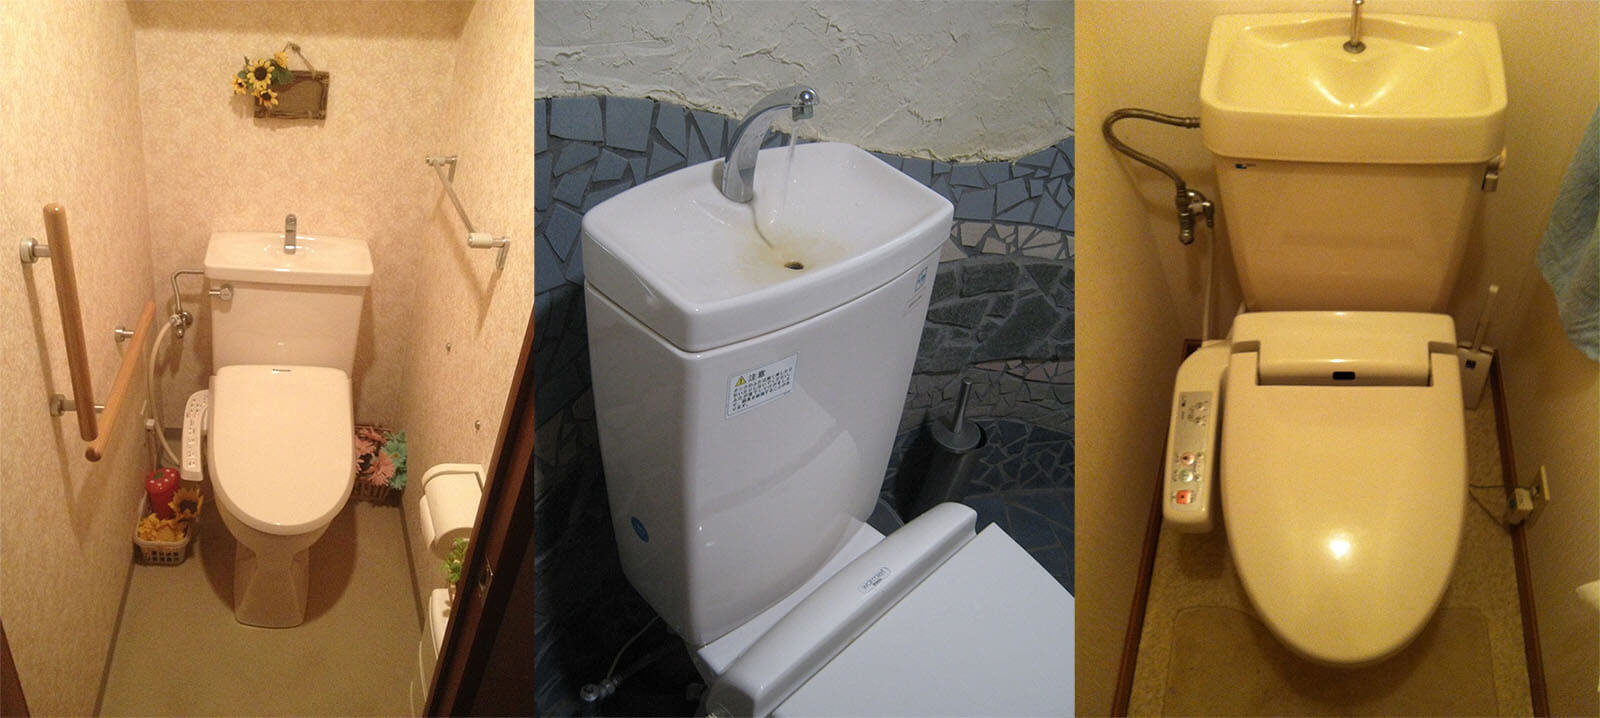 Amazing Toilets With Built In Sinks Found In Apartments And Restaurants Throughout  Tokyo